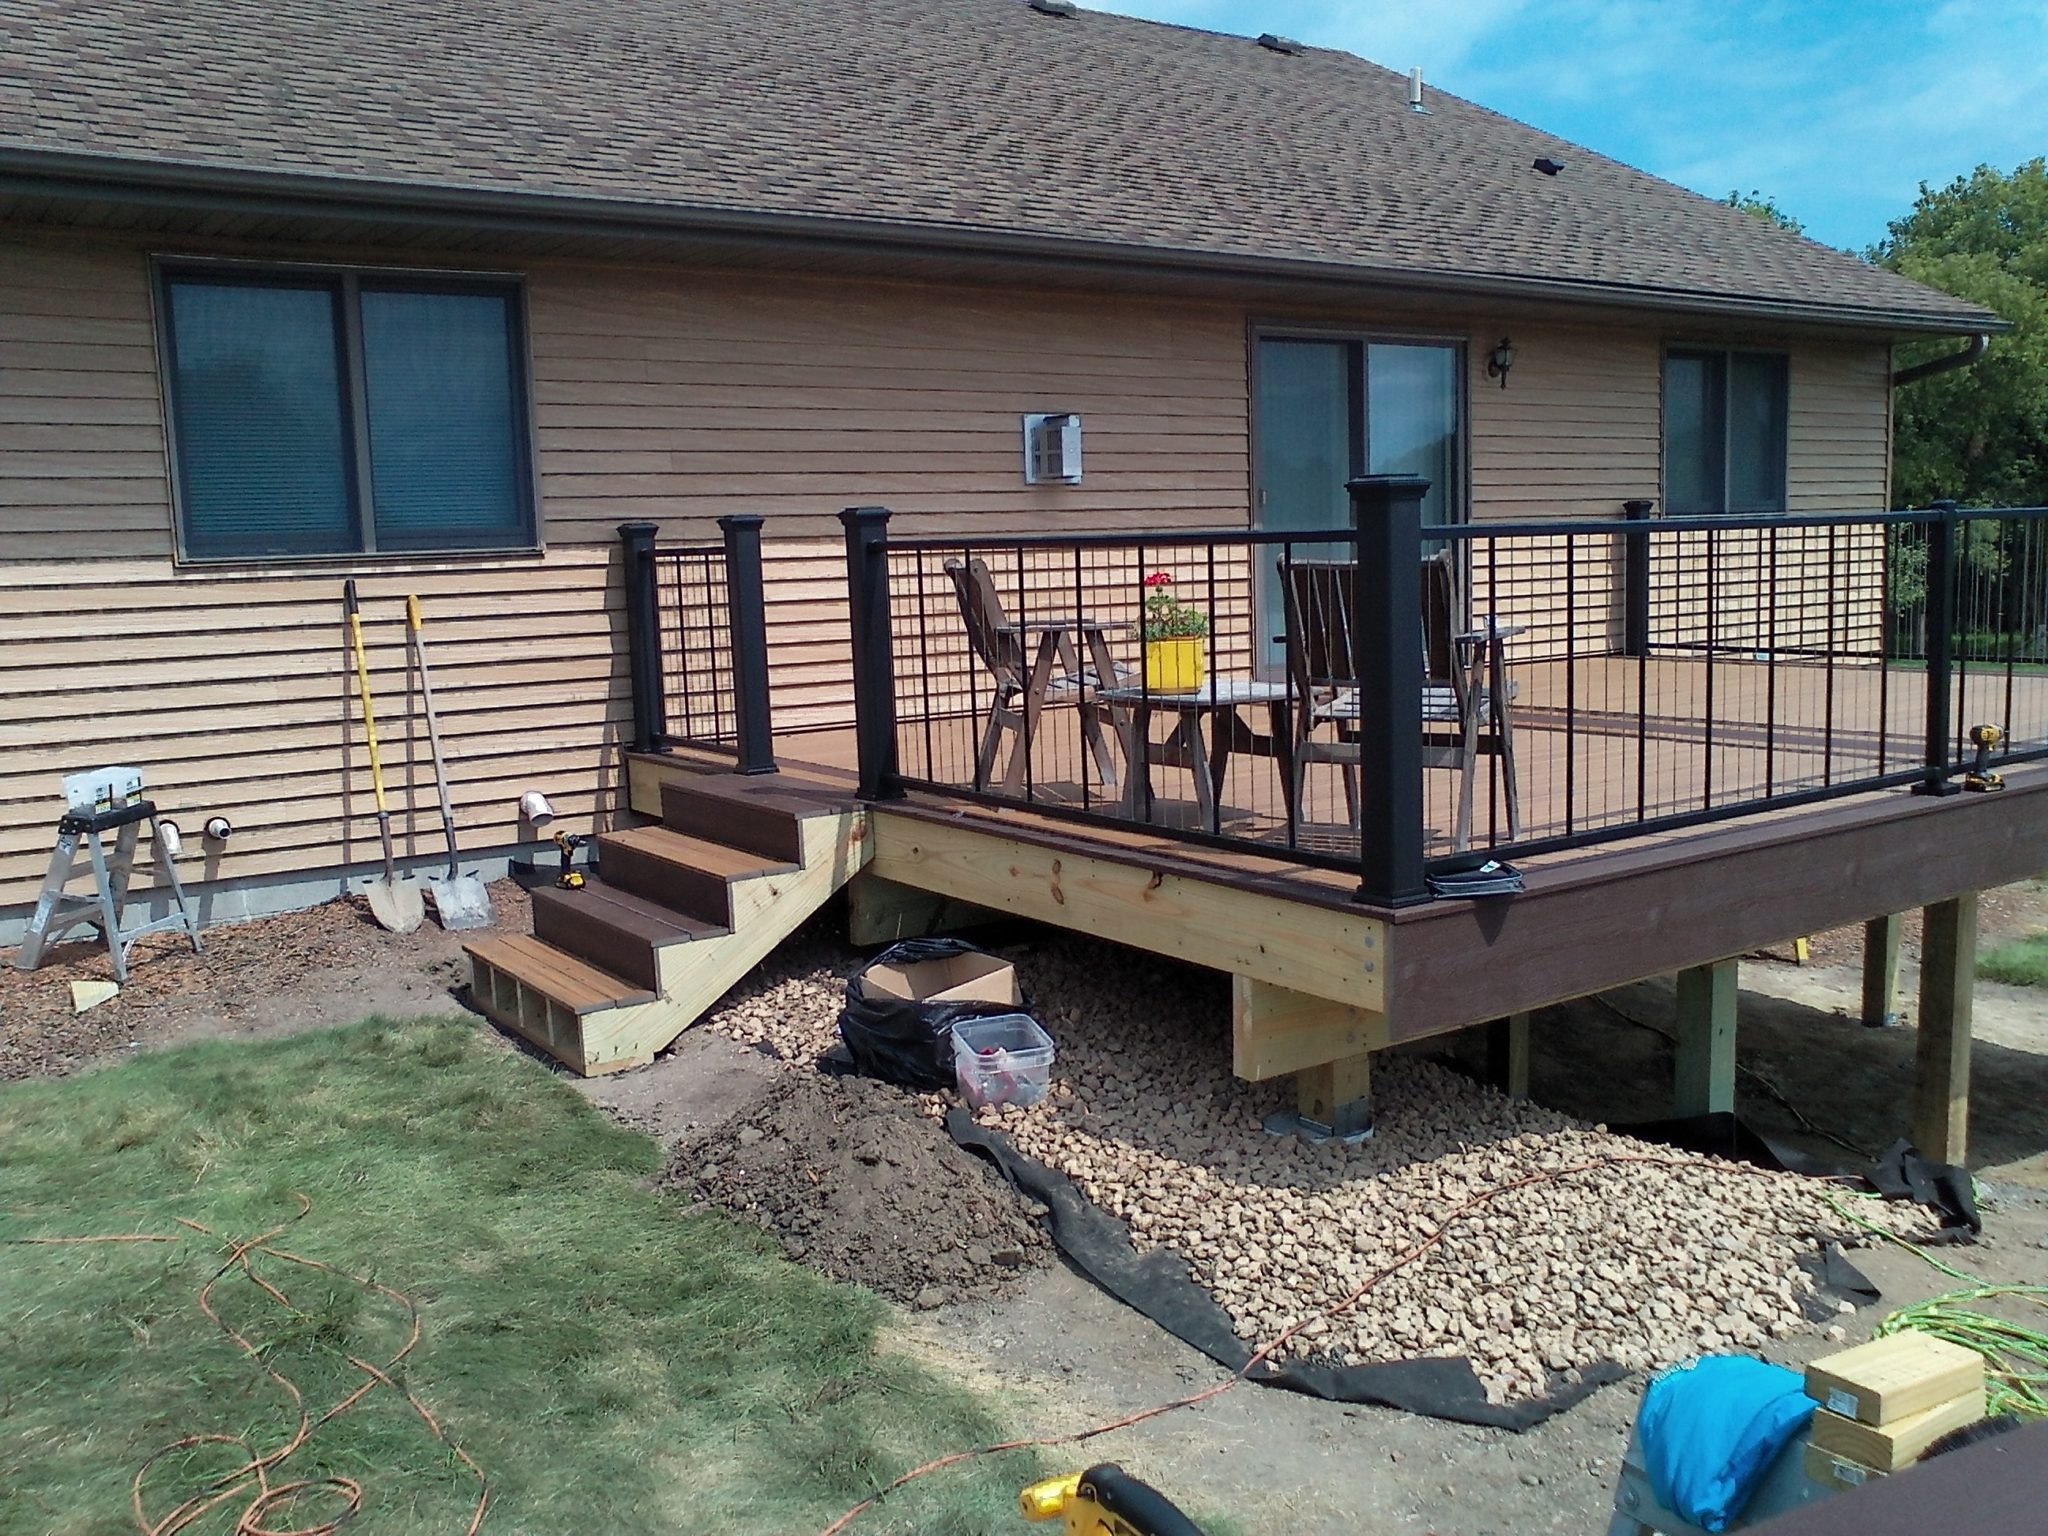 mankato-deck-and-railing-141908